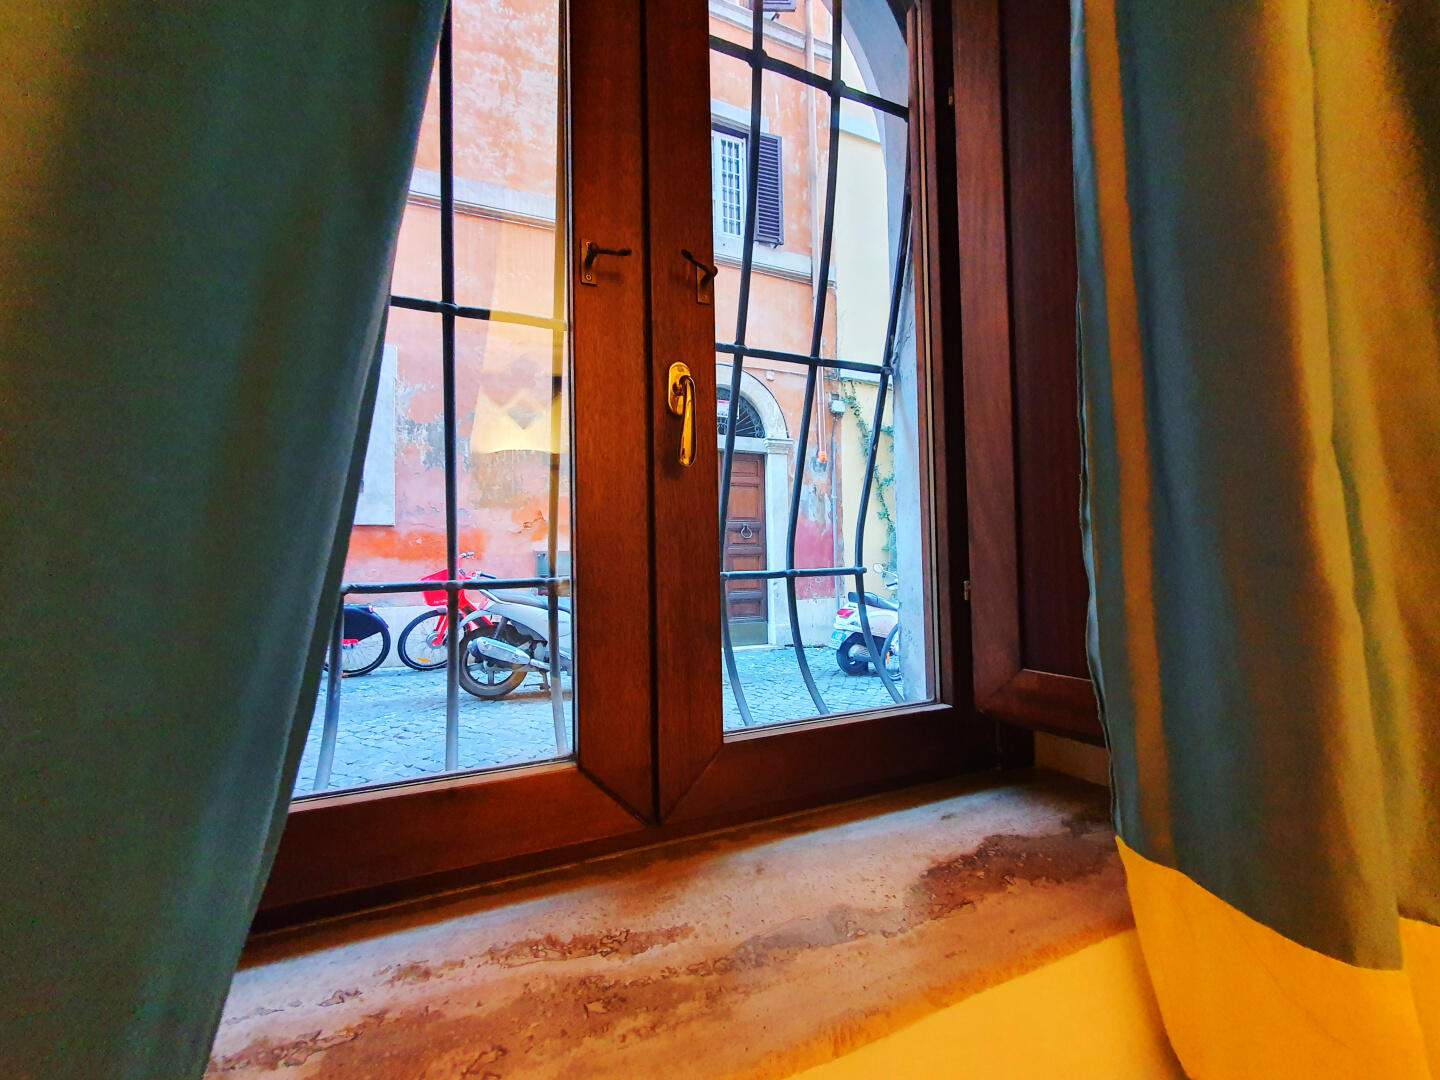 Trevi Holiday | Dream Stay for 2 in Heart of Rome! Slide-23